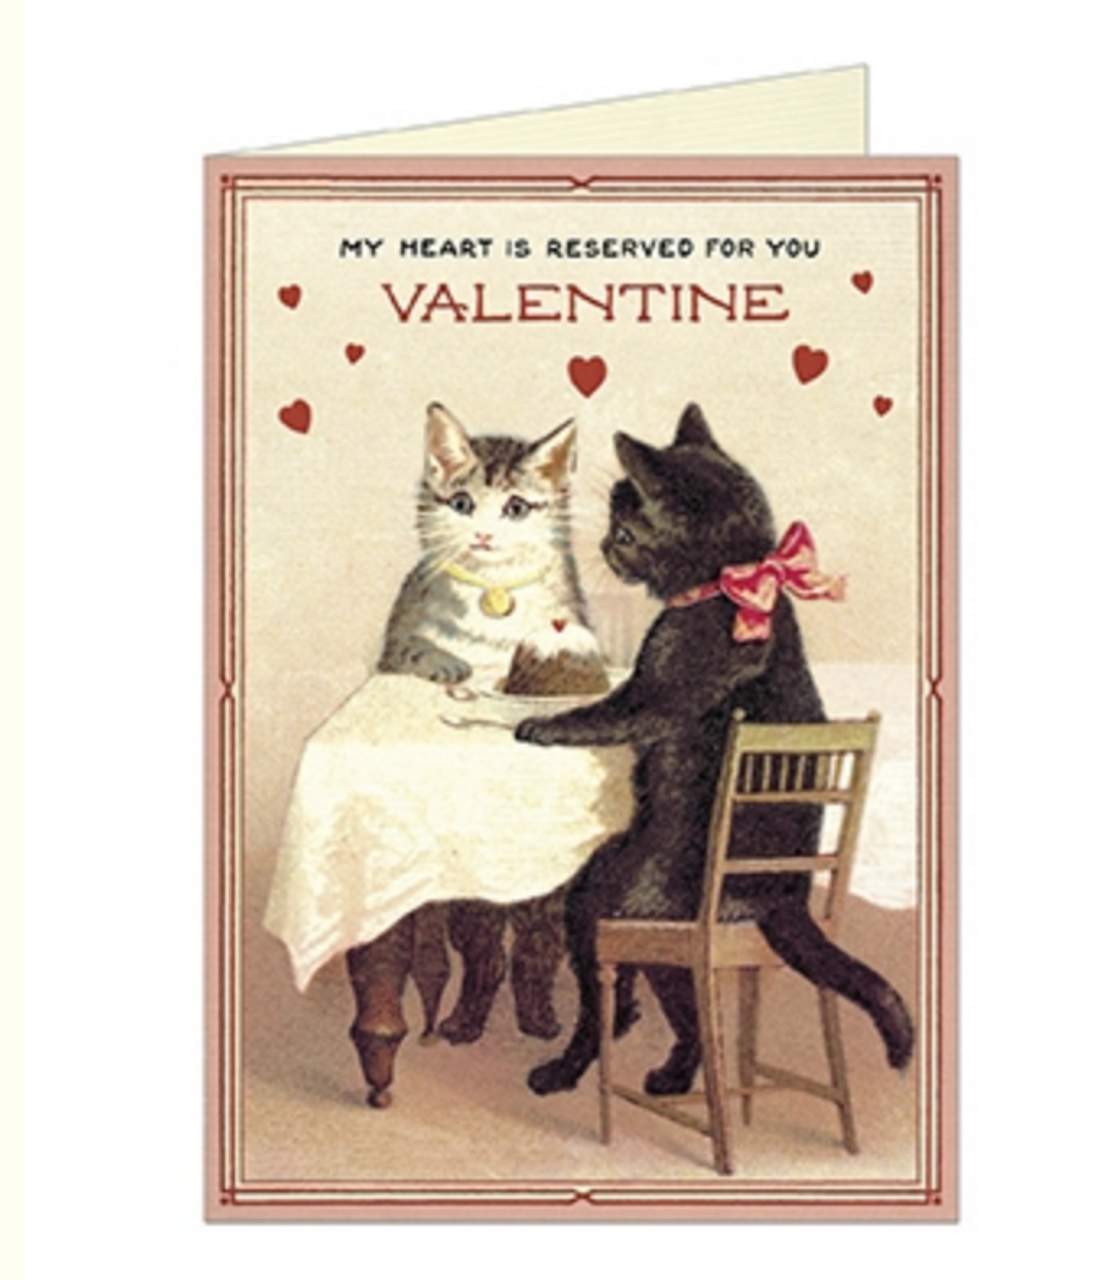 My Heart is Reserved for You Kitty Valentine Card